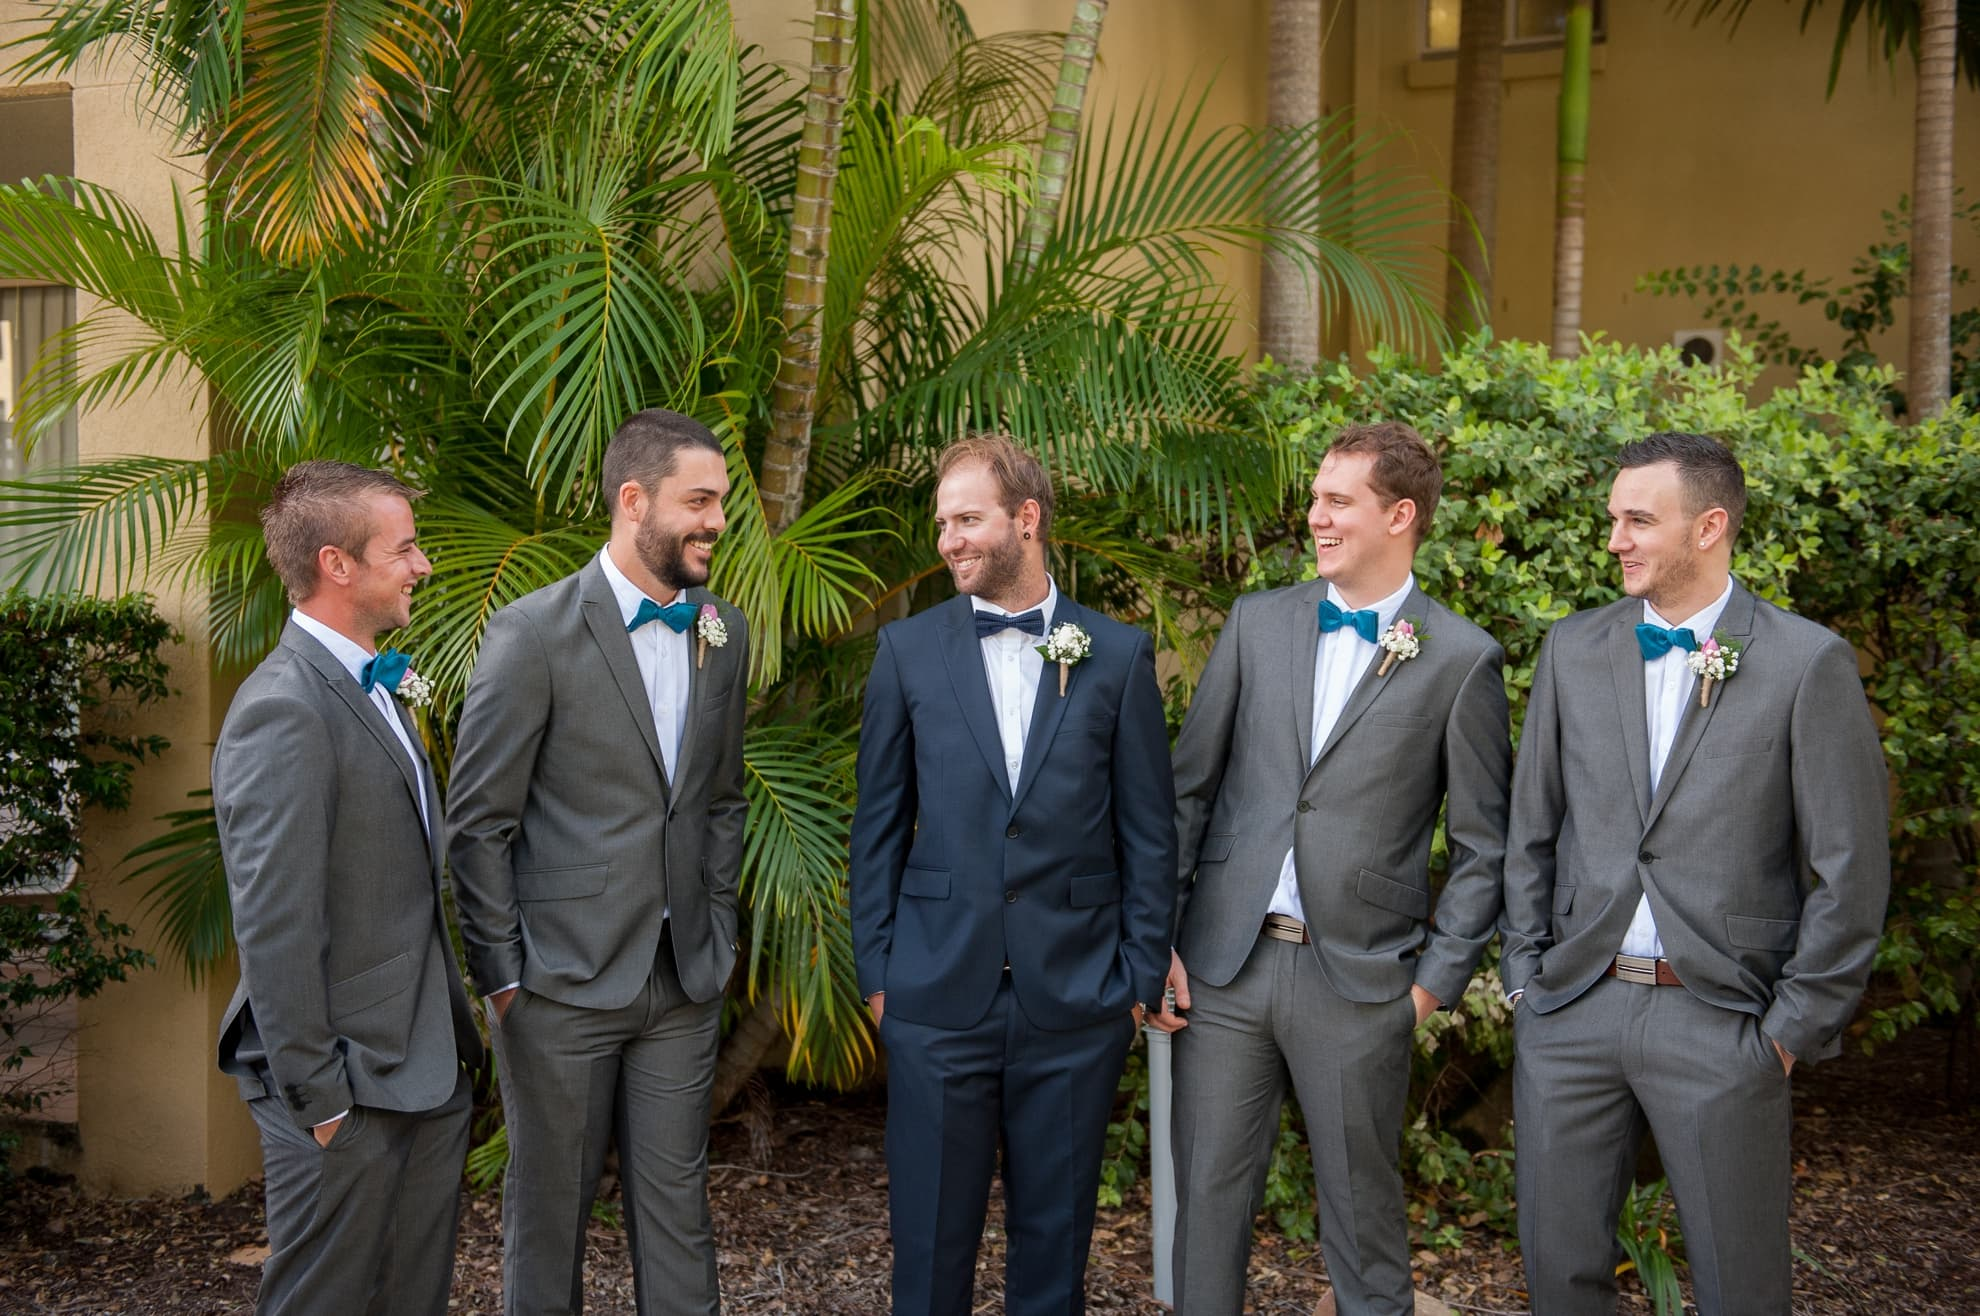 groomsmen-loking-at-each-other-smiling-and-having-a-good-time